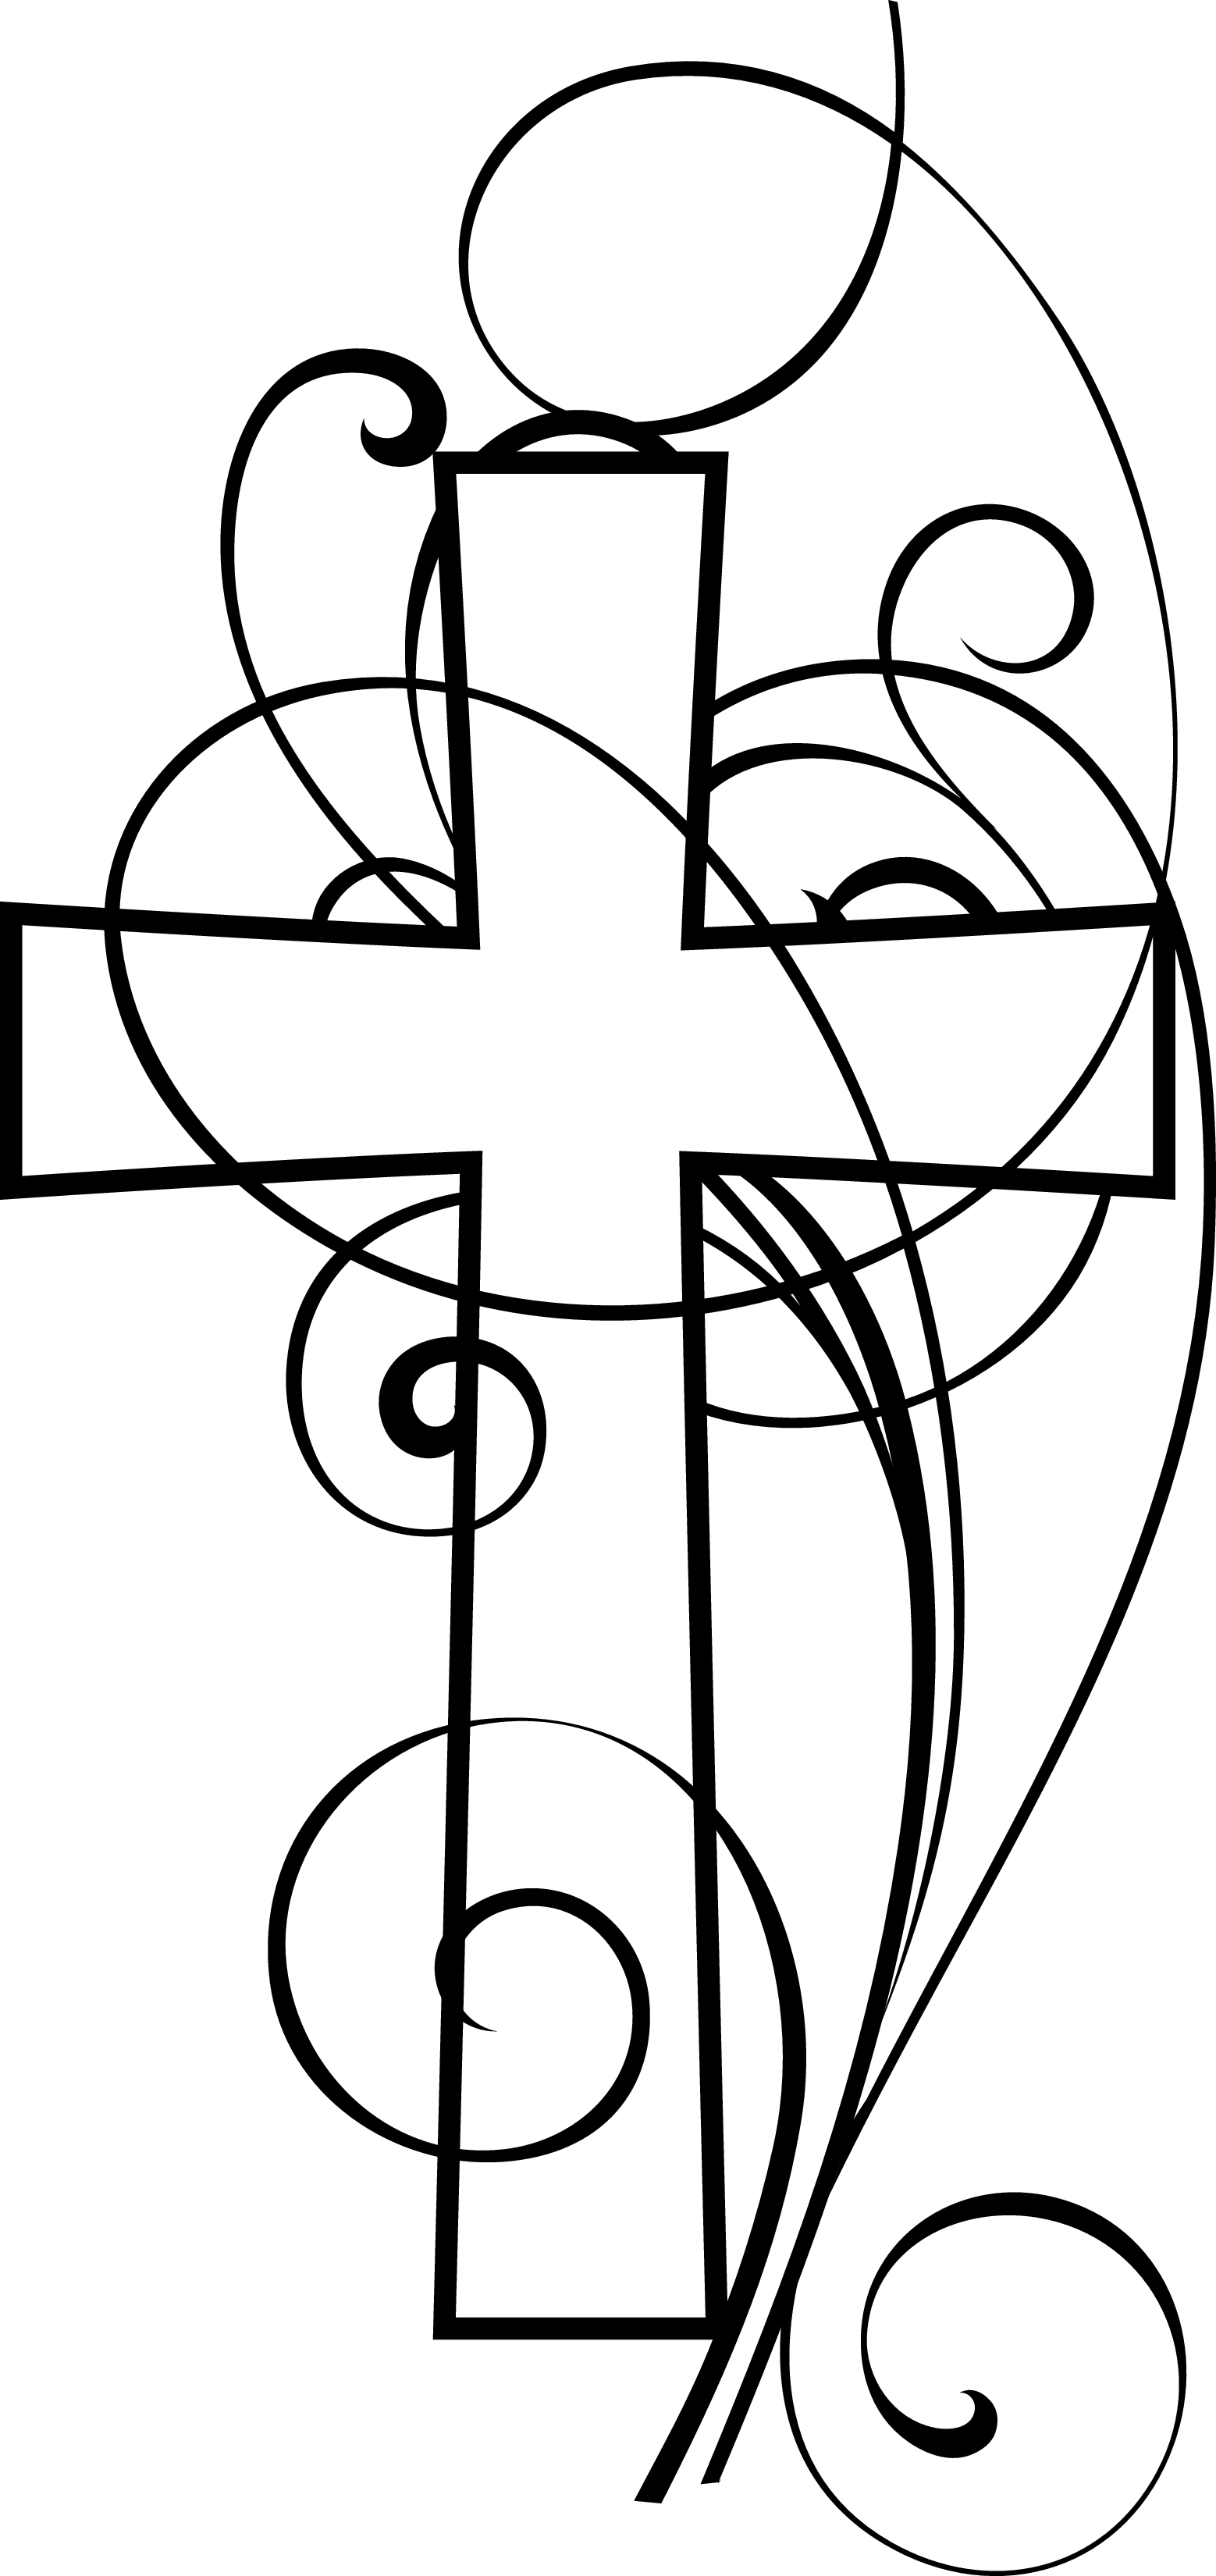 Christian Clip Art Black And White - ClipArt Best